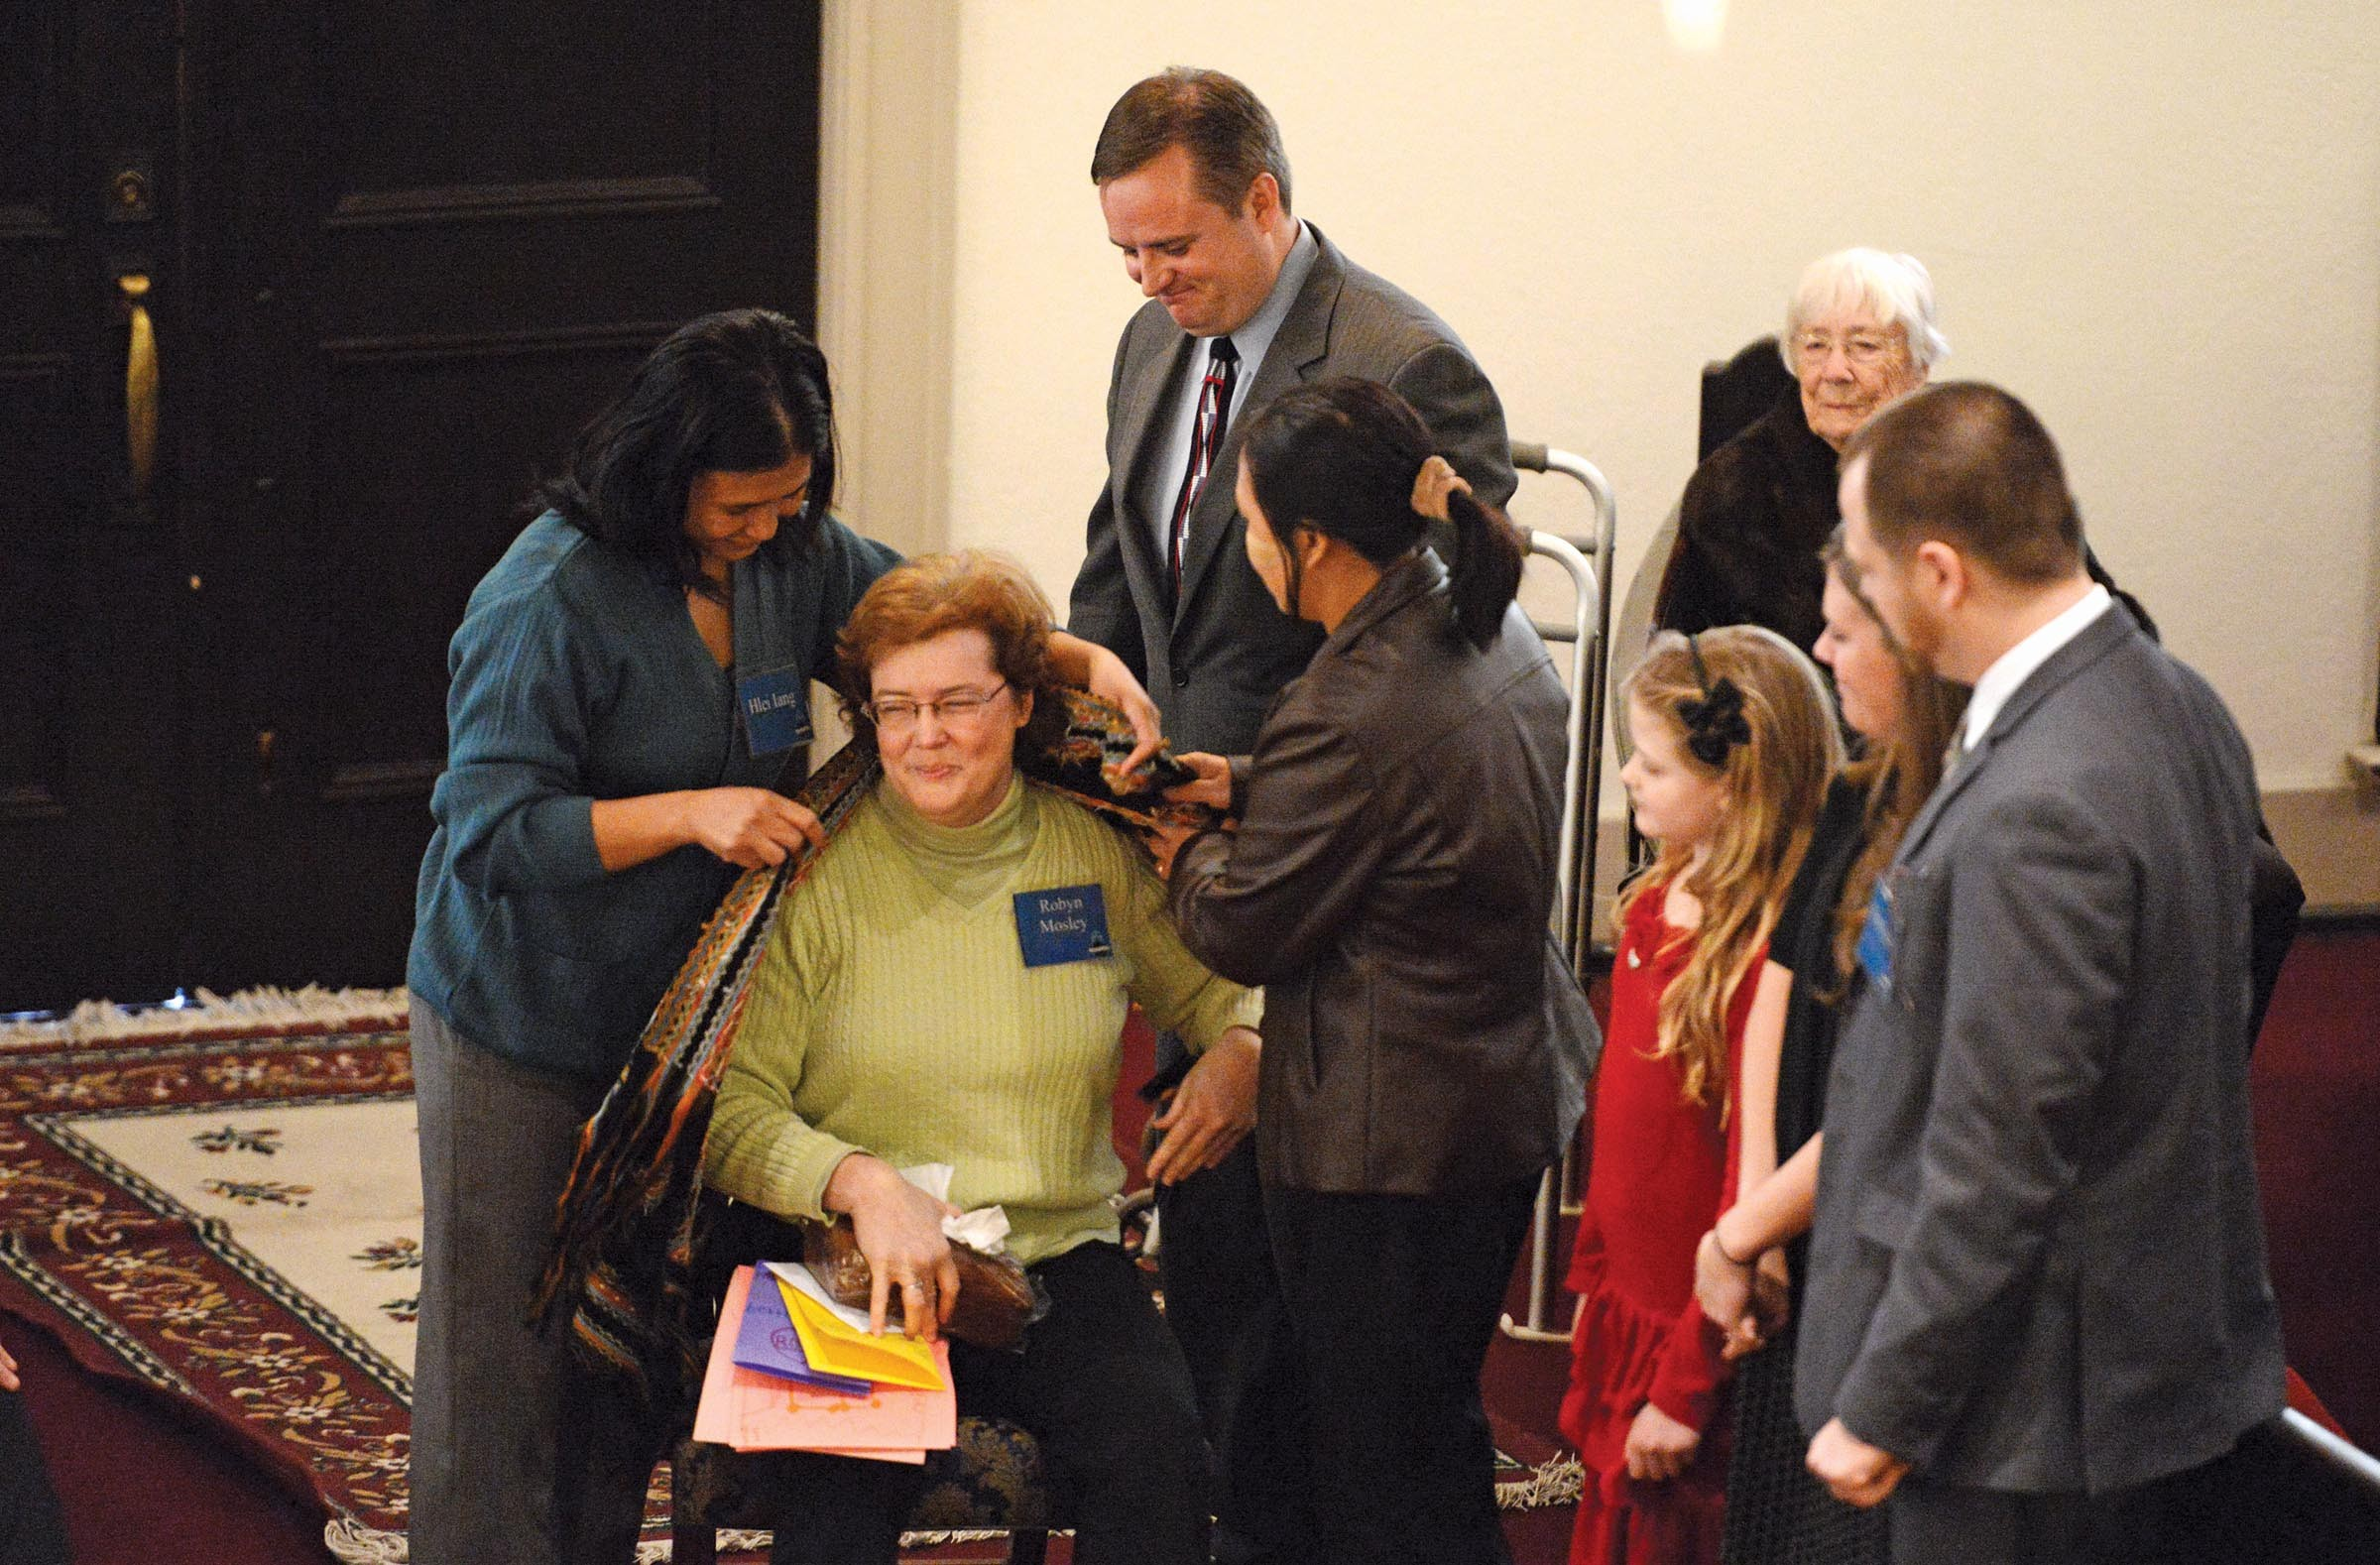 Burmese members of Tabernacle's congregation present a hand-woven shawl to Robyn Mosley on her last Sunday as a member of the church before she moves to Georgia.